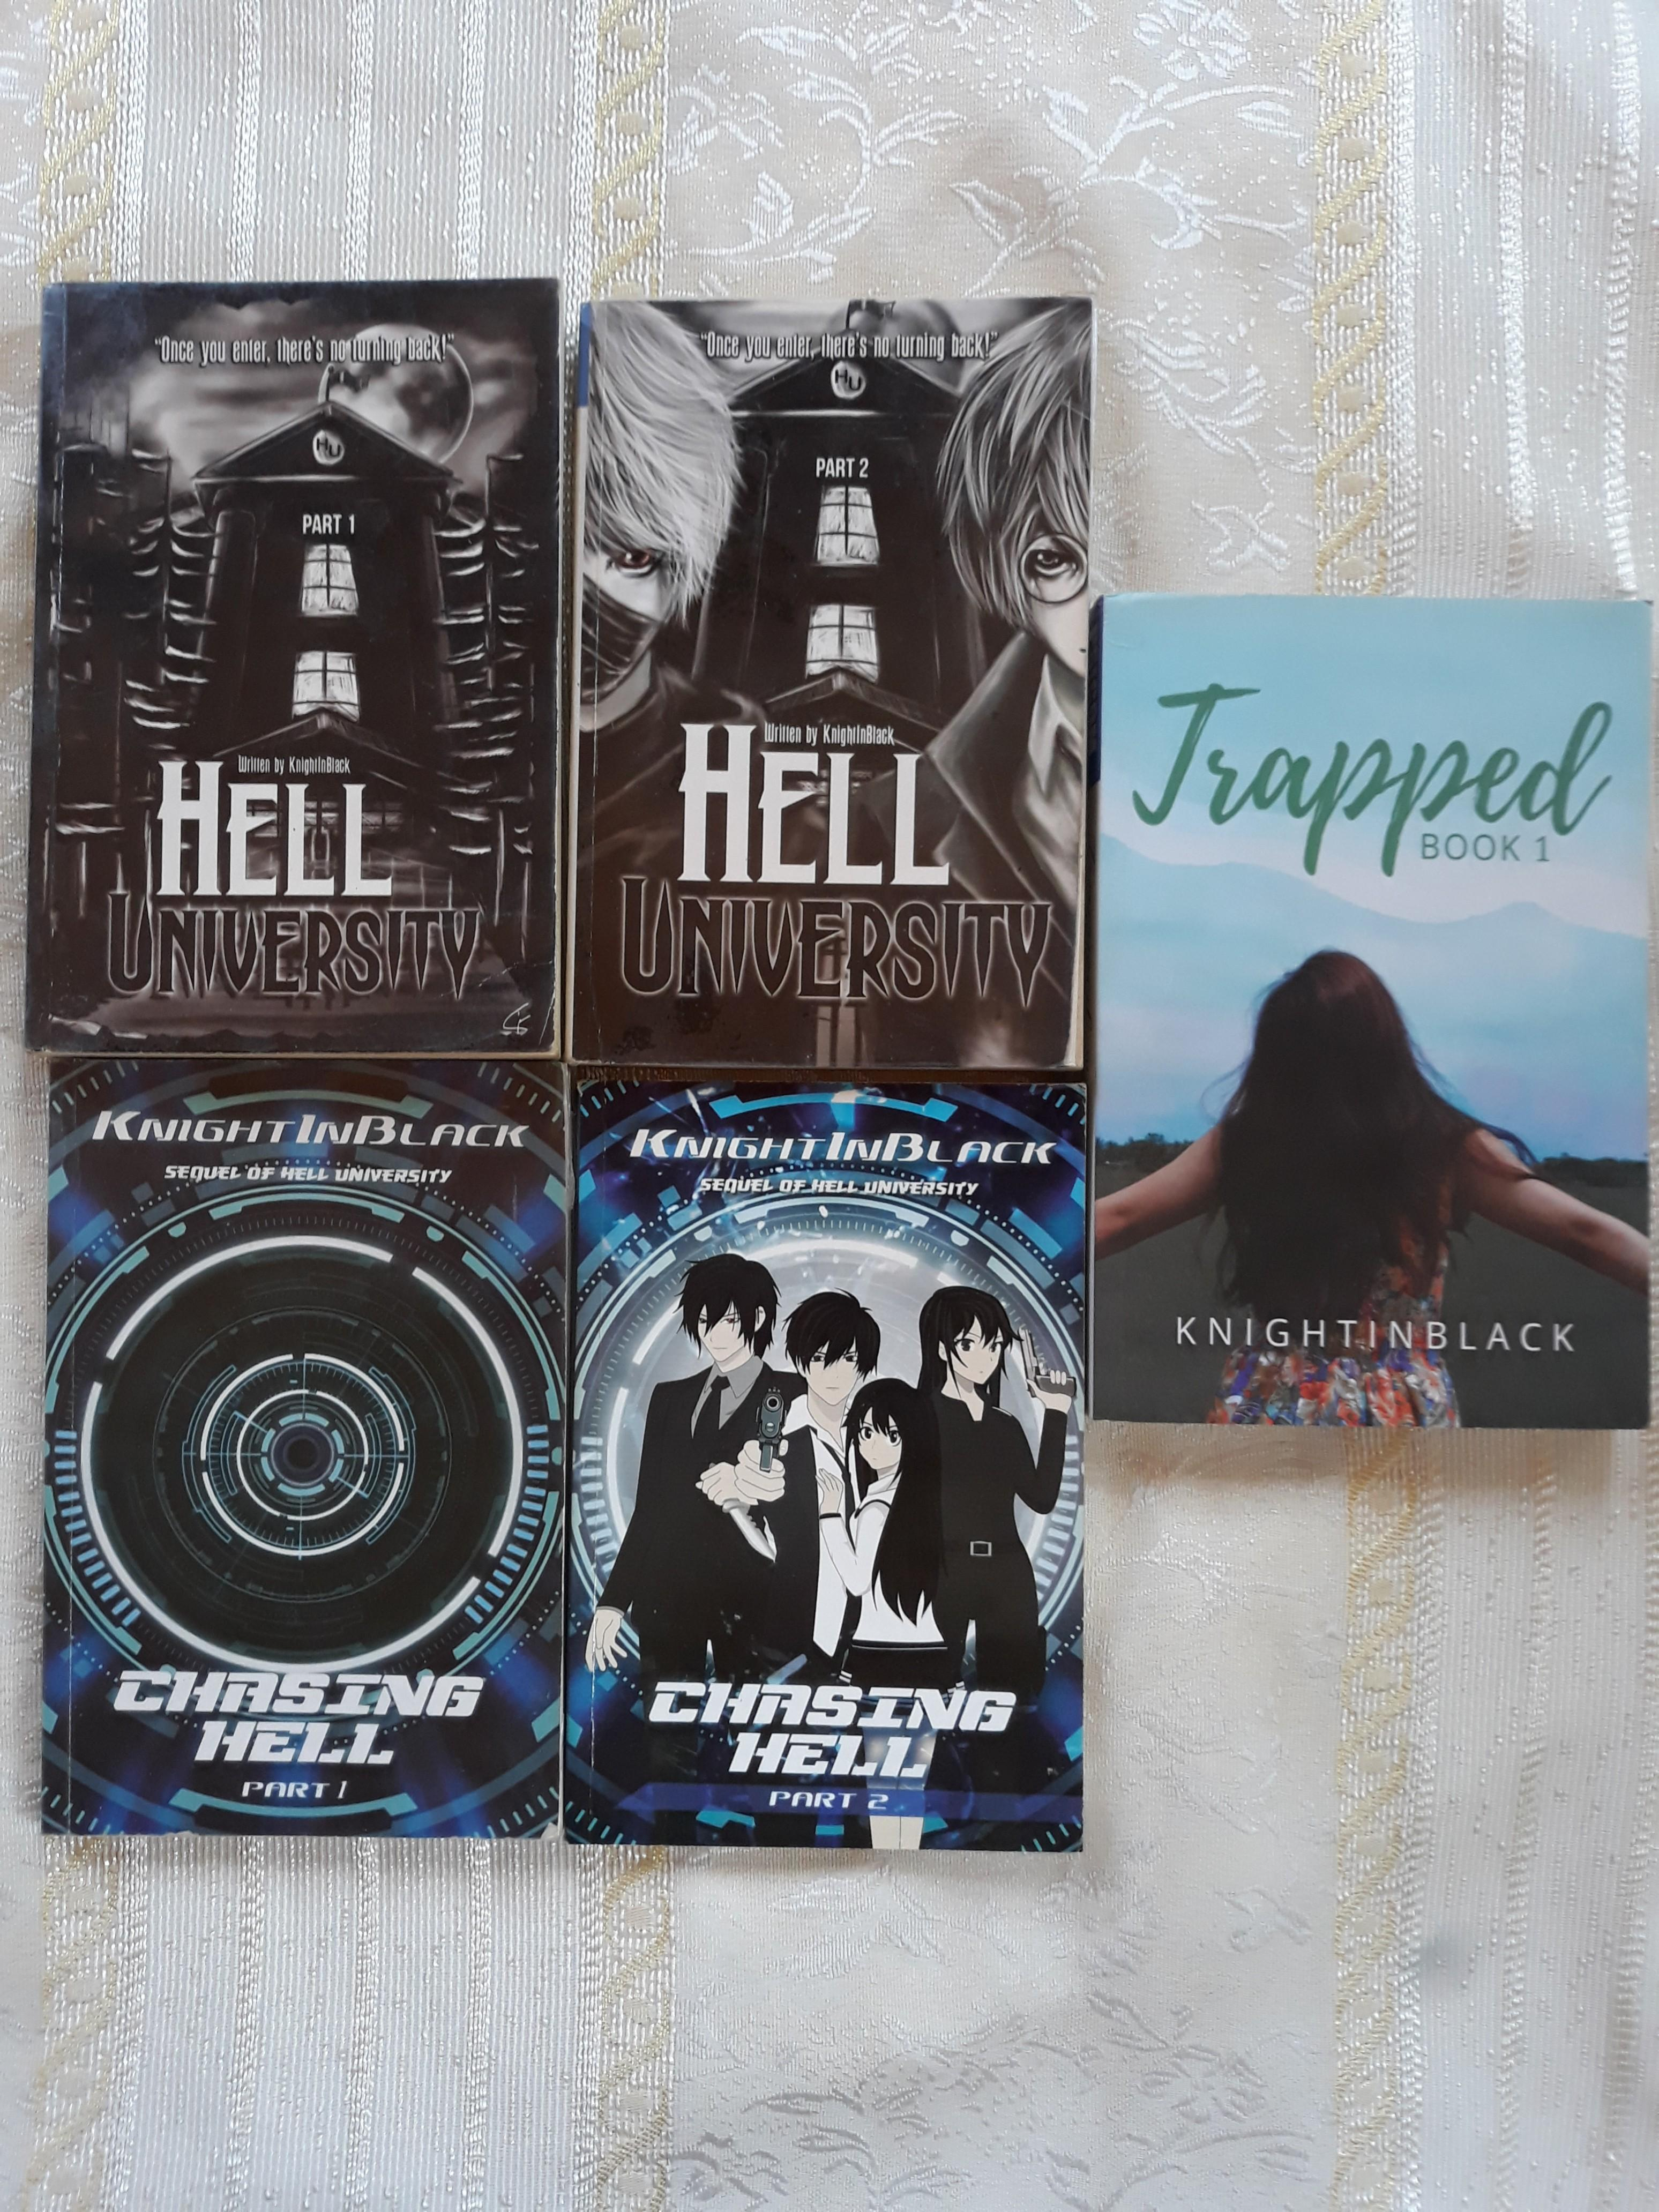 Hell University 1 & 2, Chasing Hell 1 & 2 and Trapped by KnightInBlack (PSICOM)